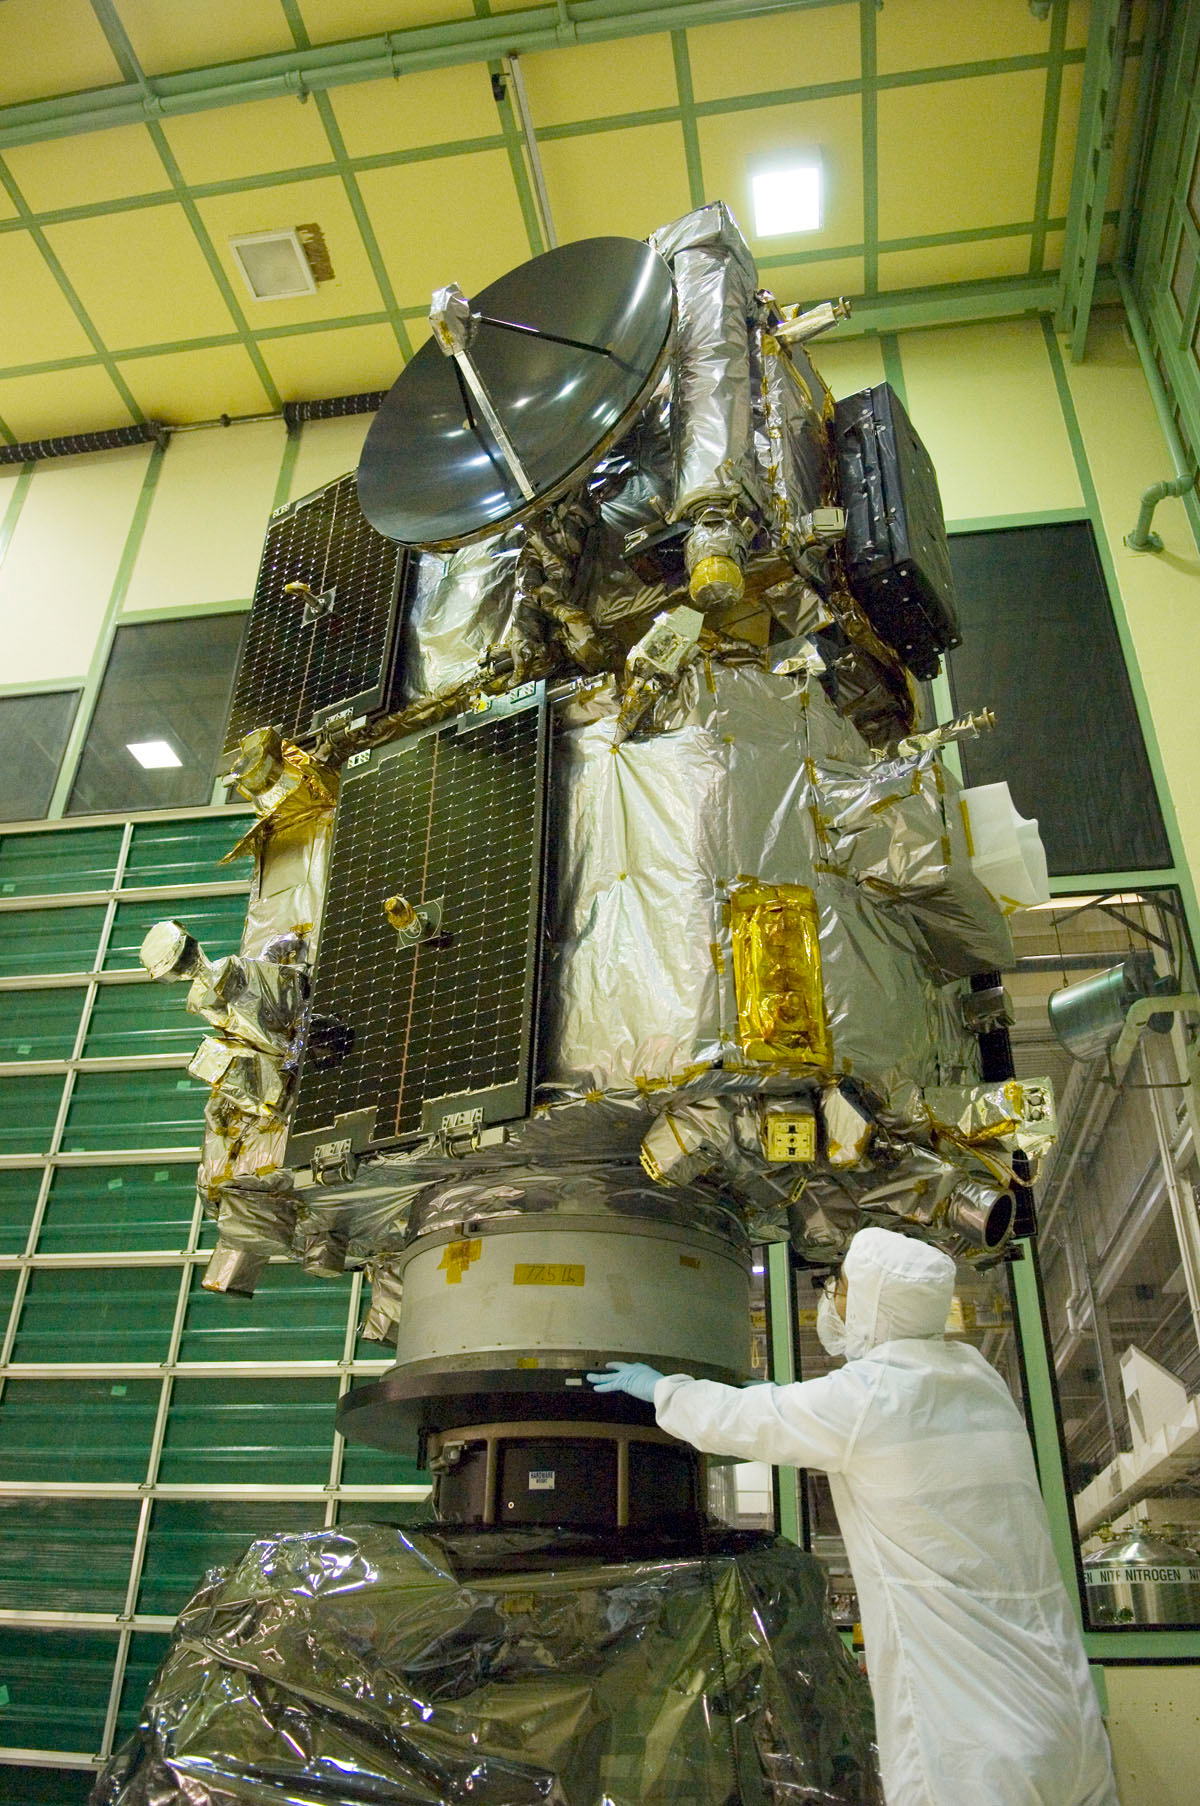 An engineer looks on as the stacked STEREO spacecraft undergo a spin balance test. Photo Credit: NASA